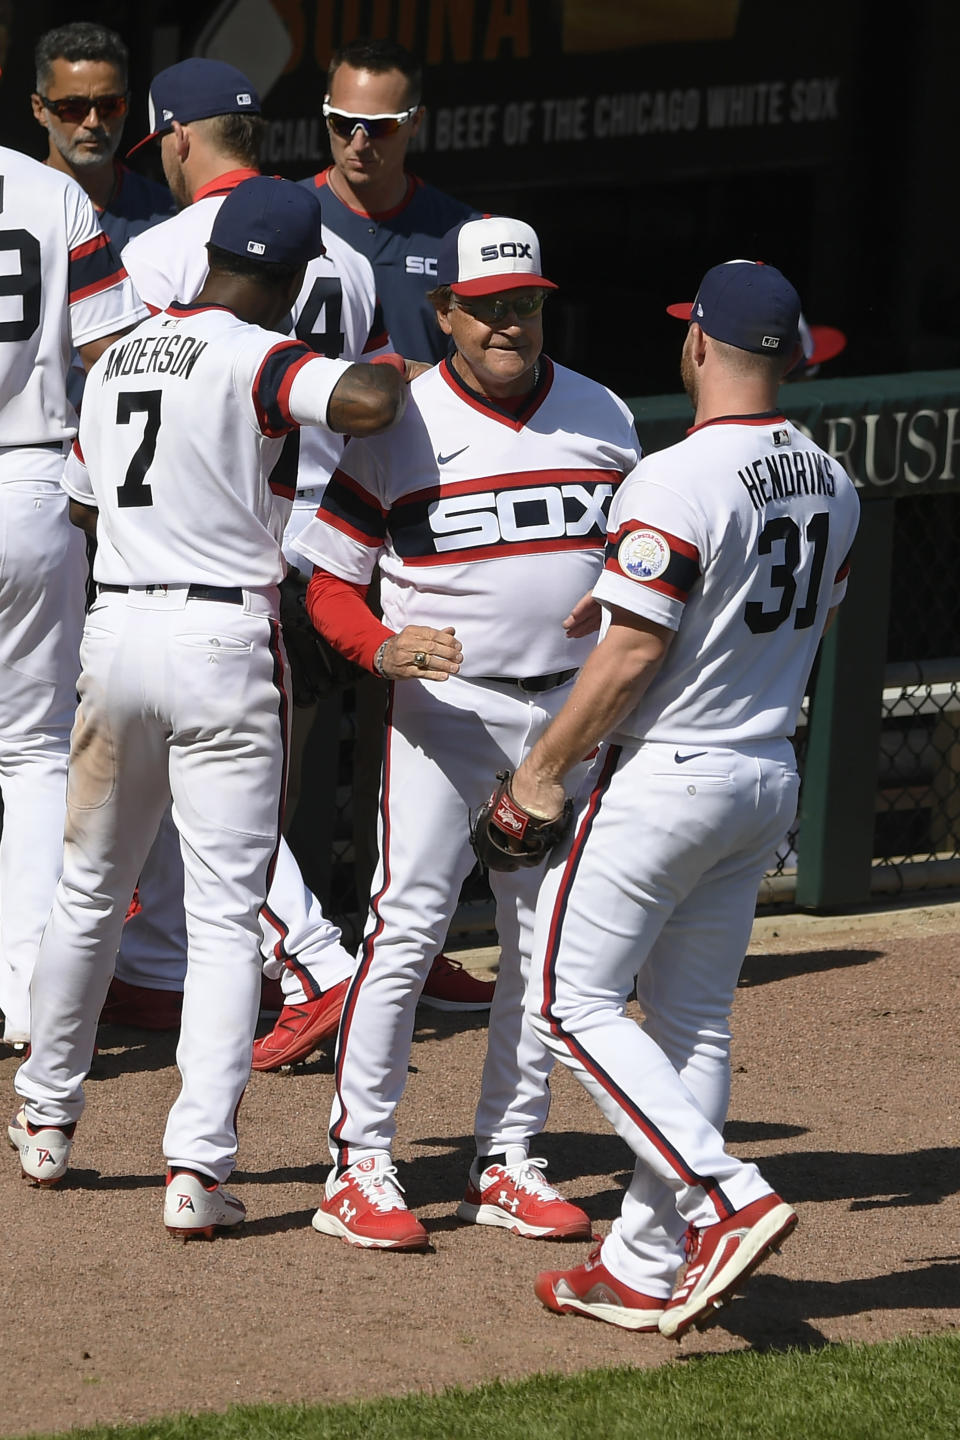 Chicago White Sox manager Tony LaRussa center, celebrates with closing pitcher Liam Hendriks (31) and Tim Anderson (7) after defeating the Baltimore Orioles during a baseball game Sunday, May 30, 2021, in Chicago. (AP Photo/Paul Beaty)